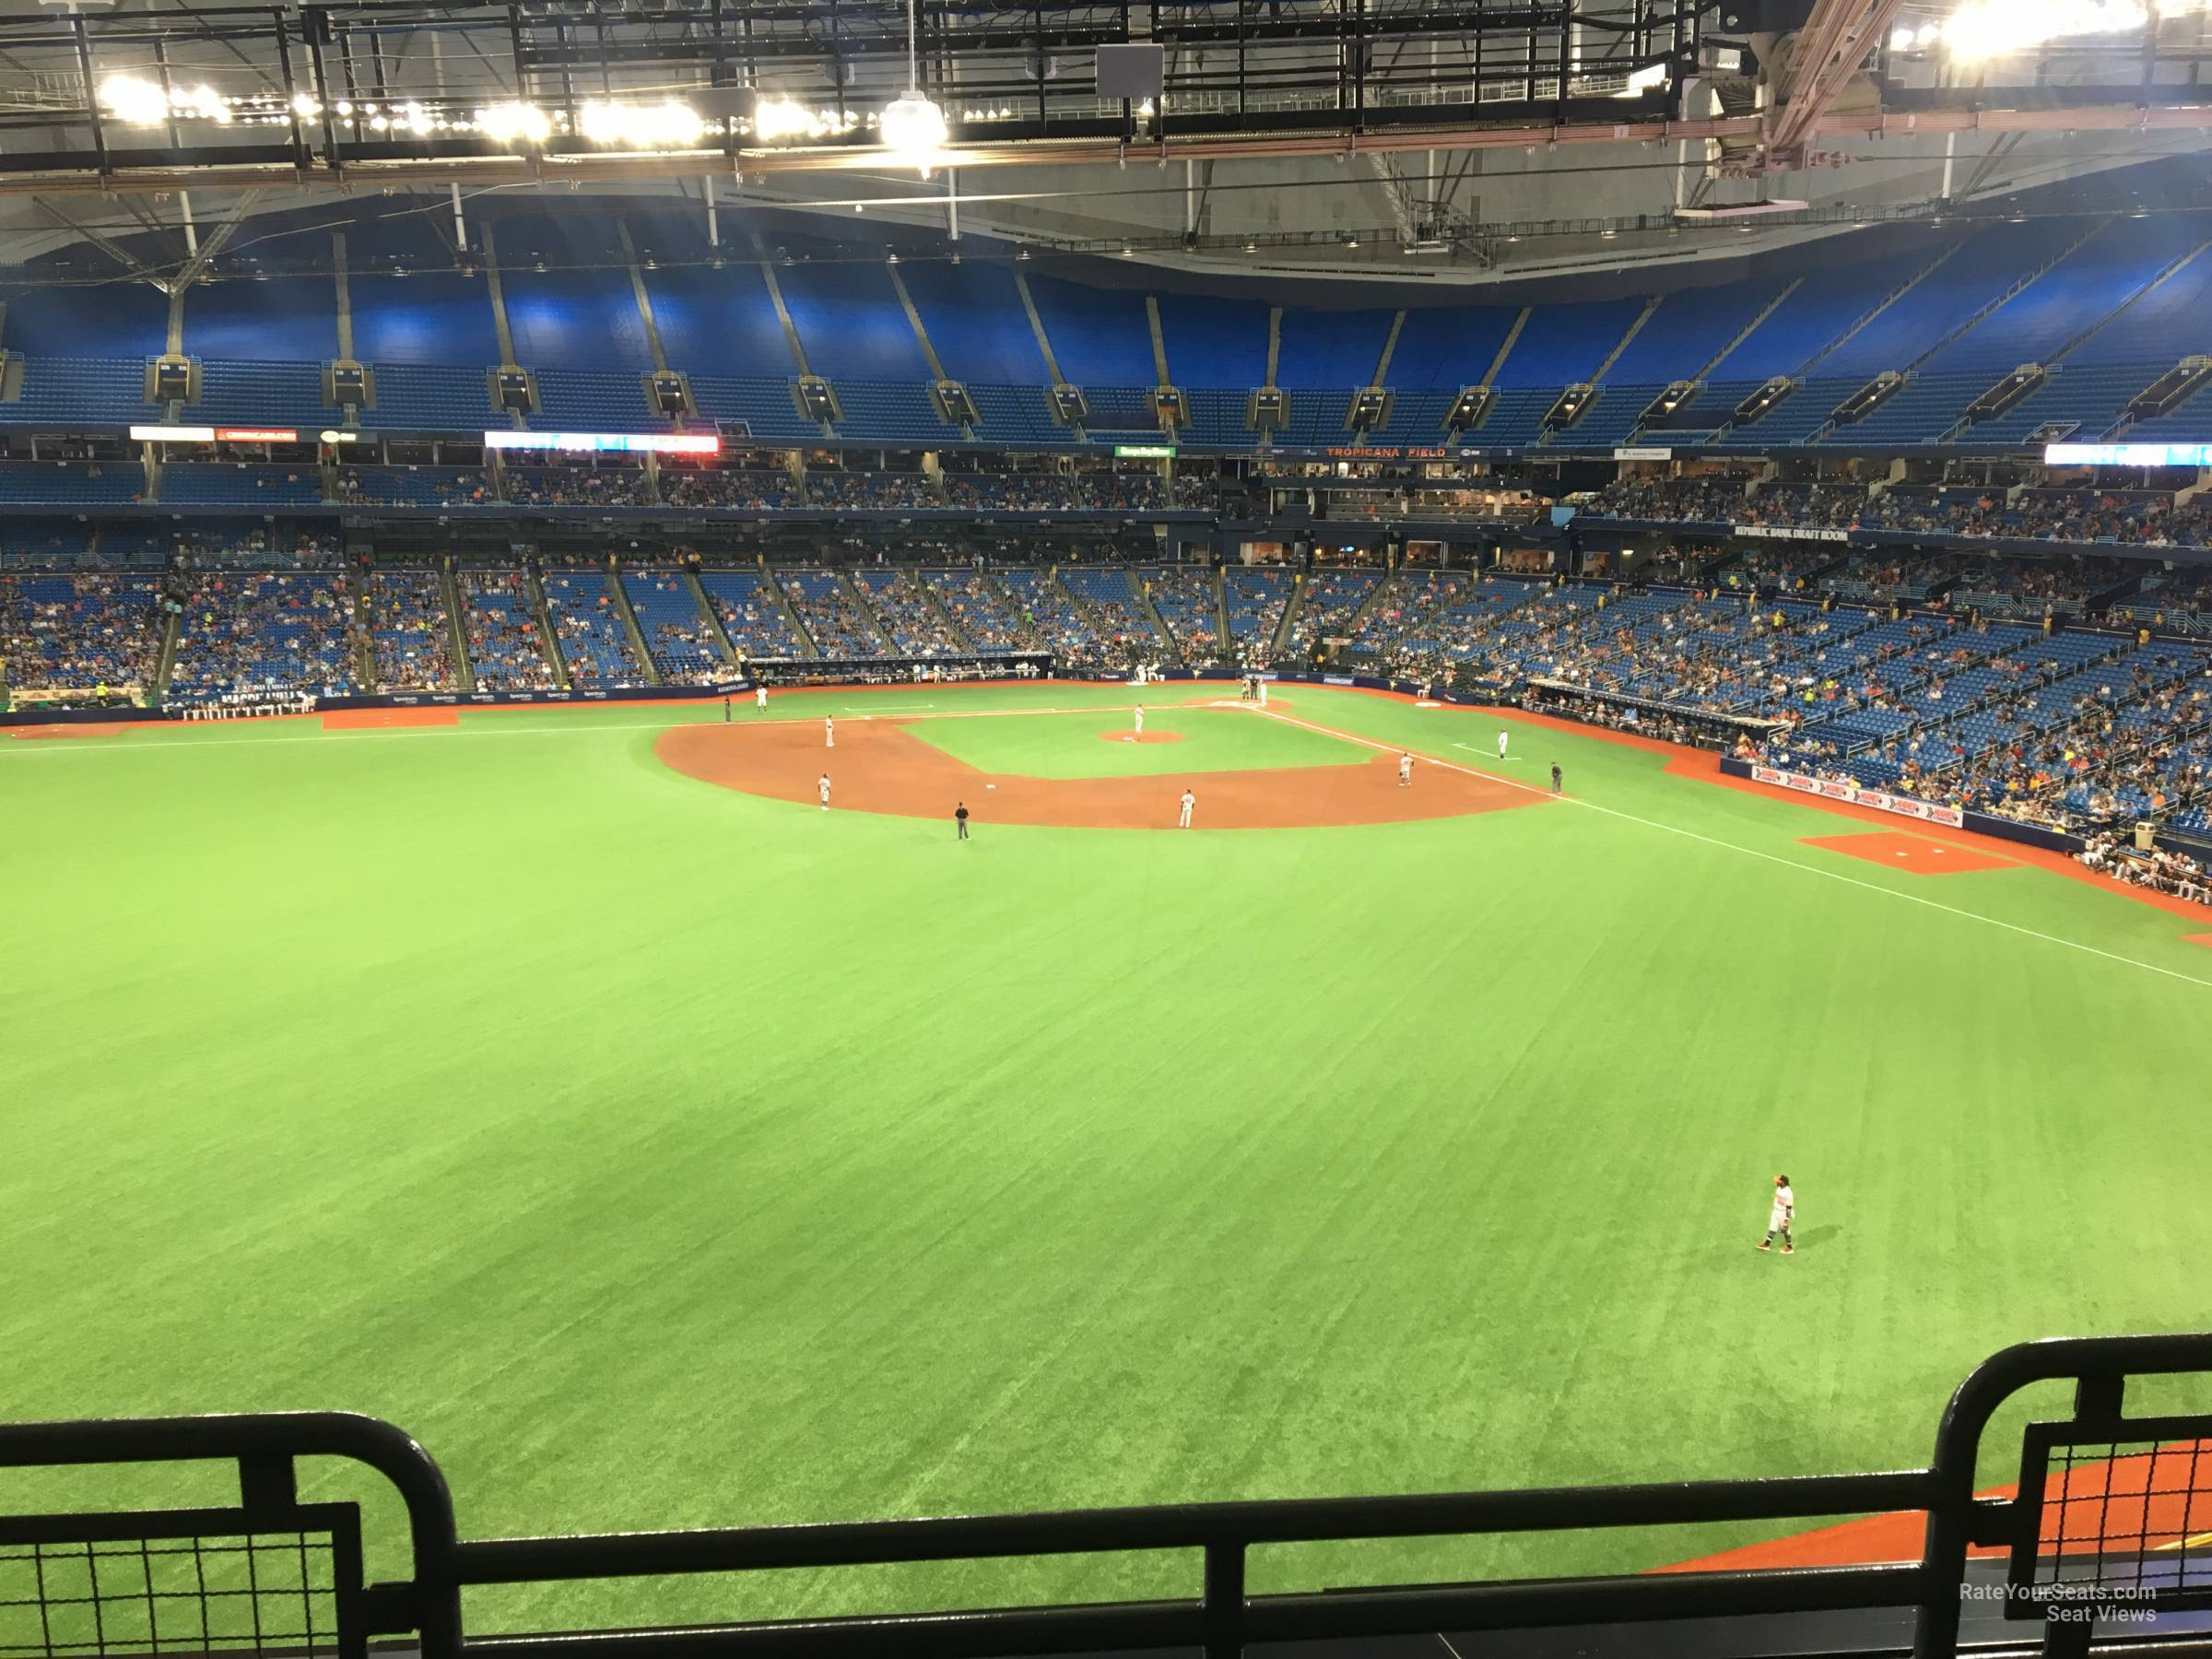 Section 355 seat view